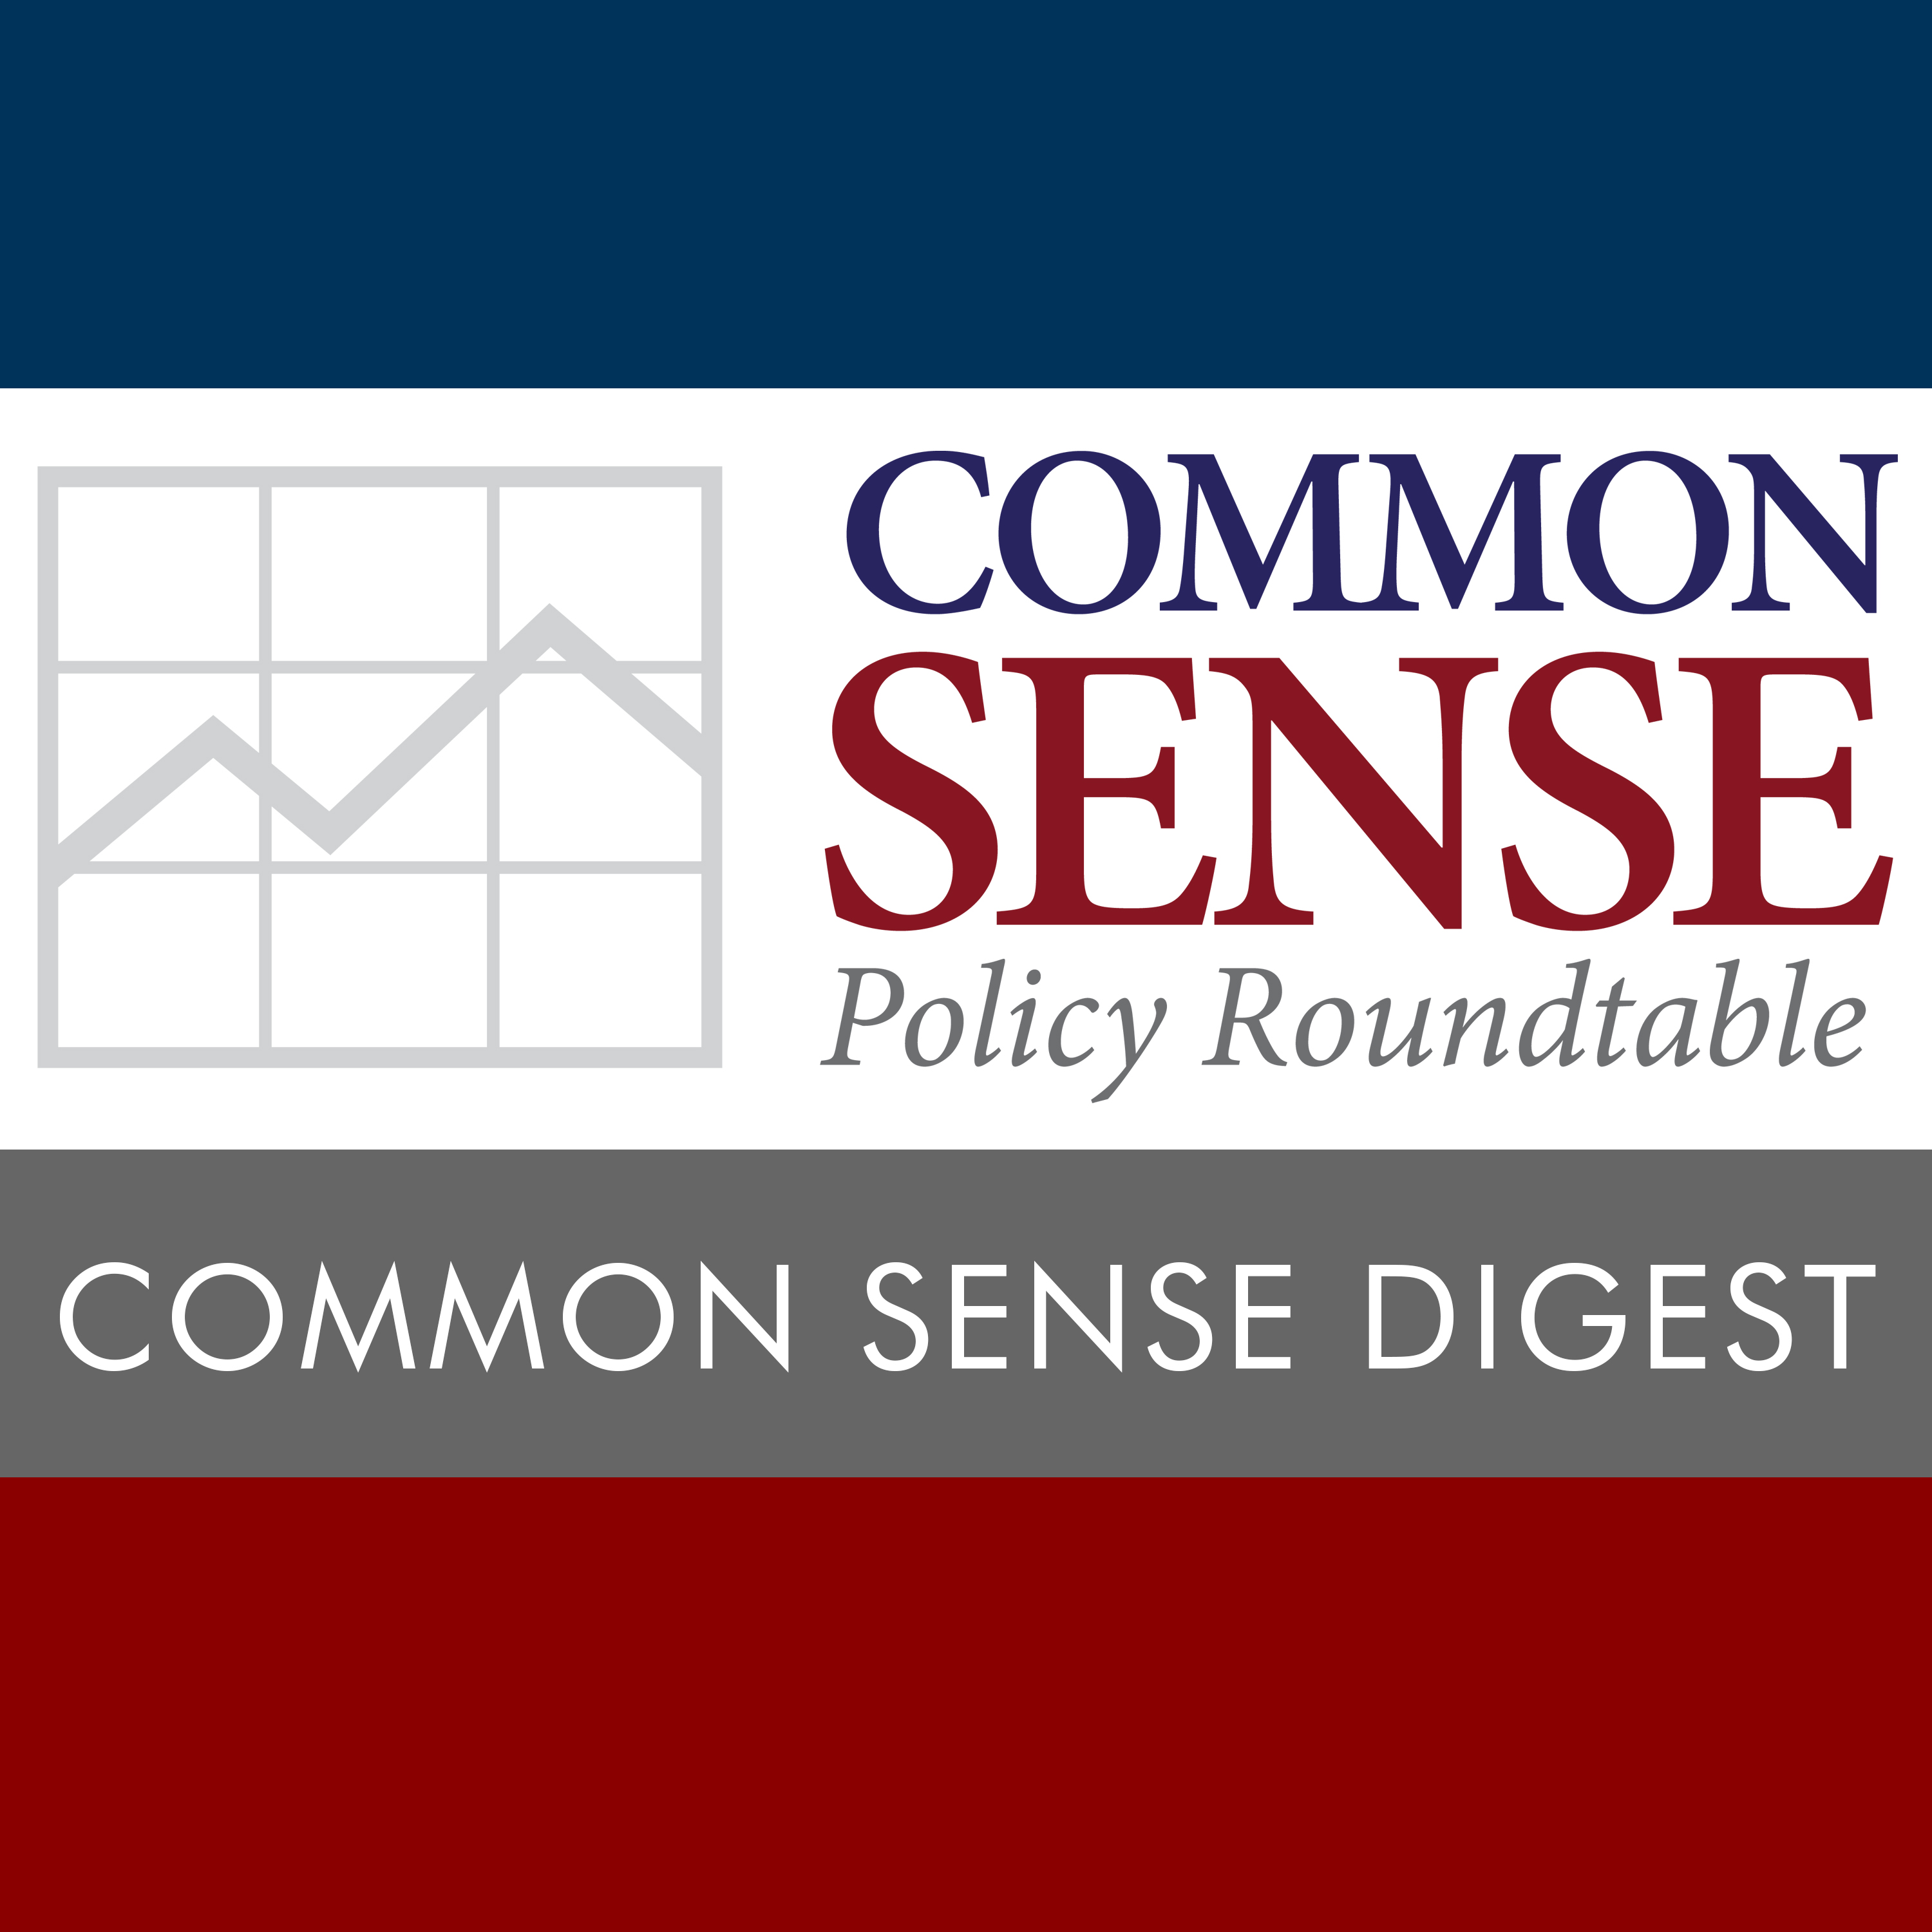 Common Sense Digest